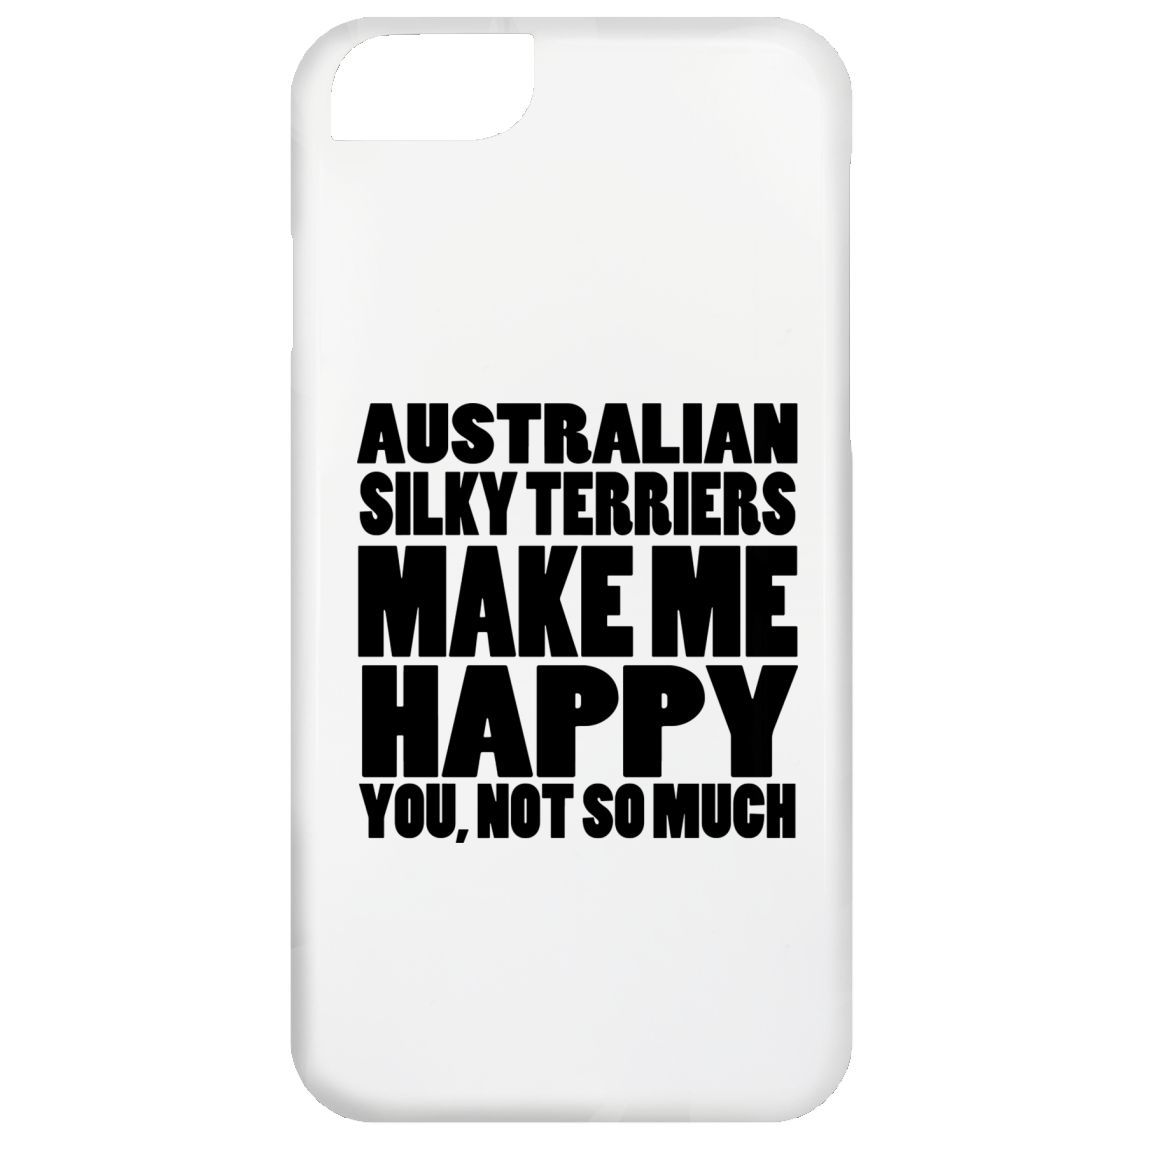 Australian Silky Terriers Make Me Happy You Not So Much iPhone 6 Cases